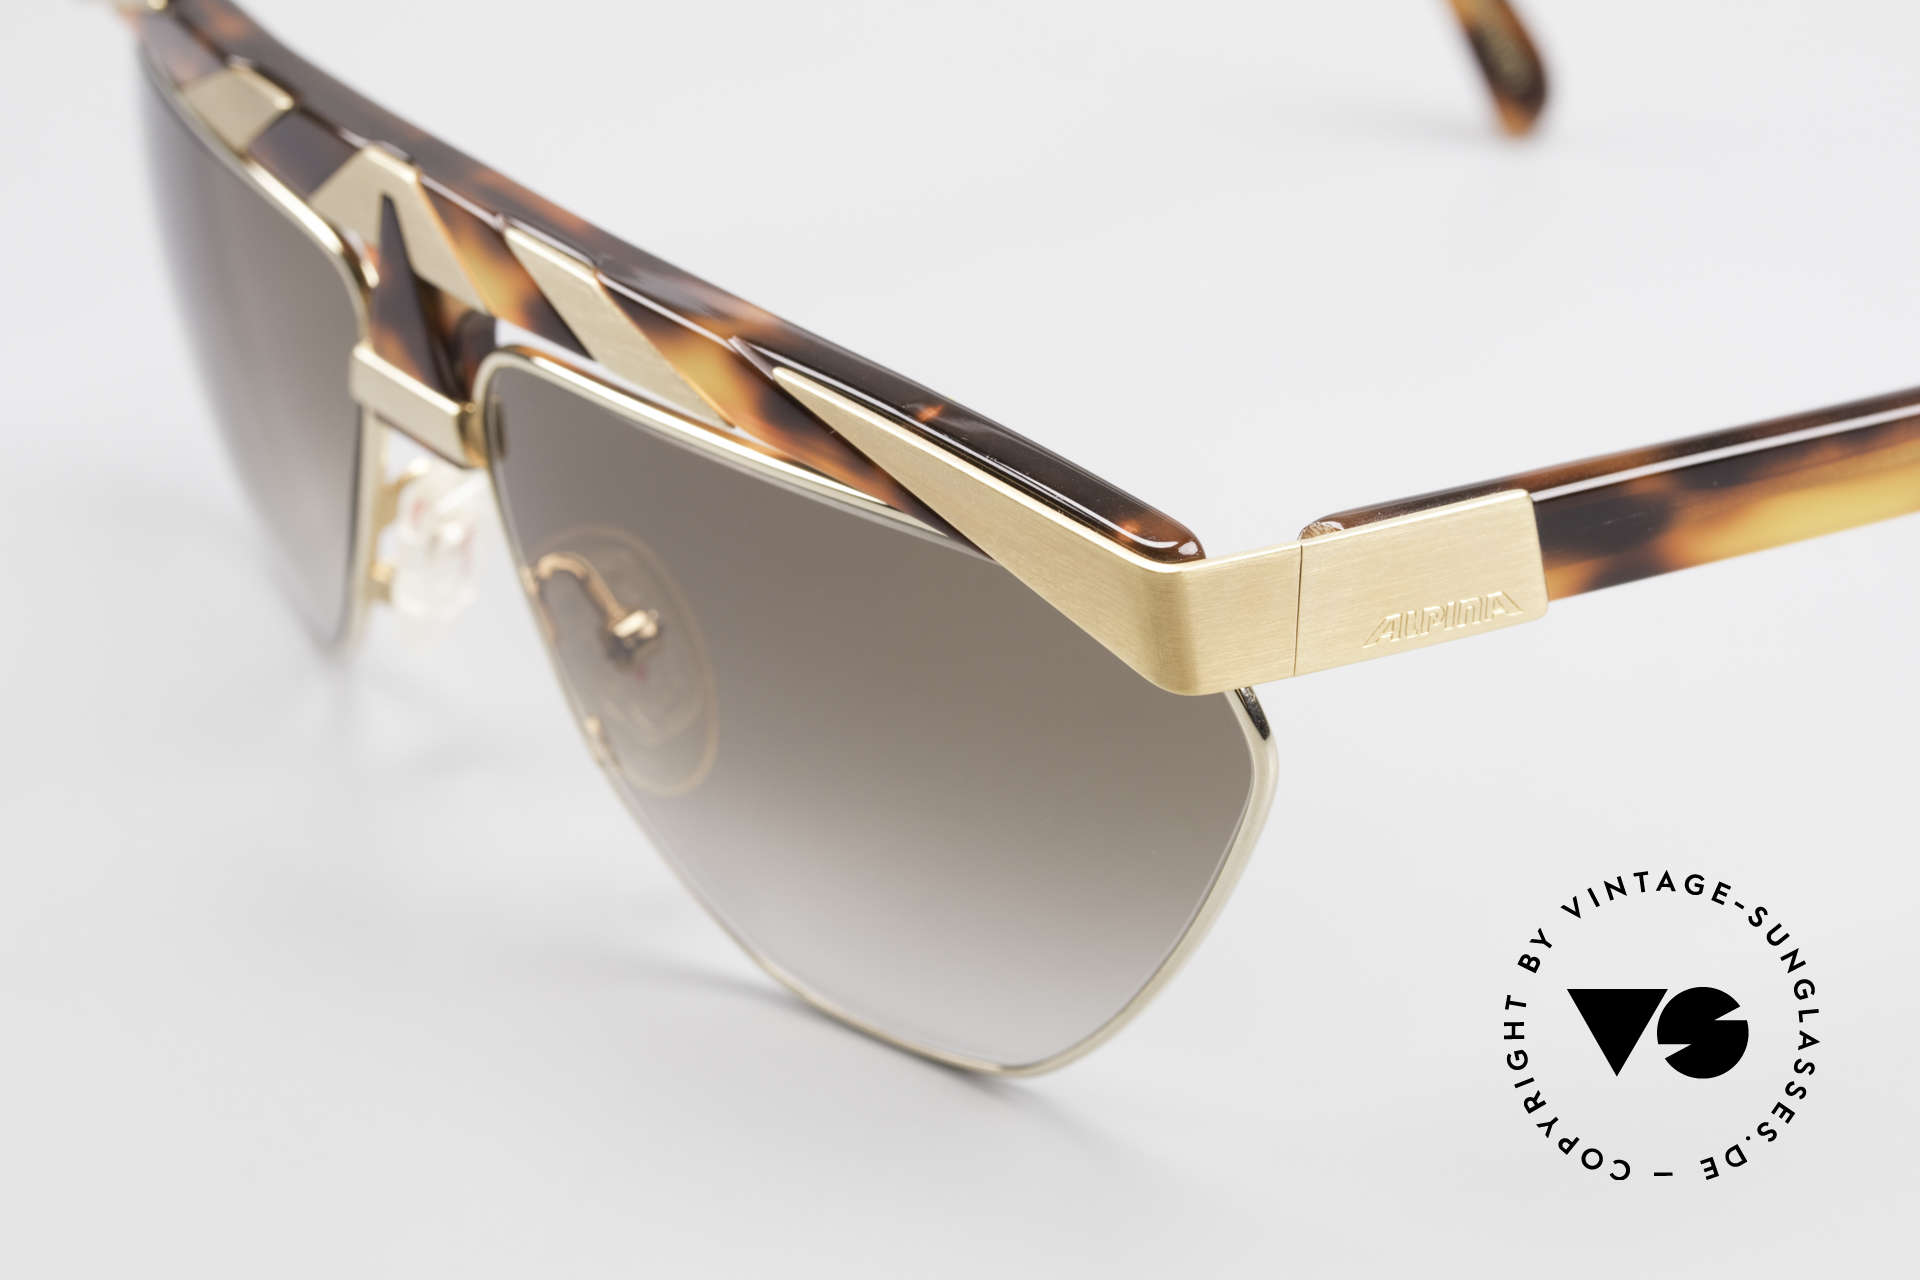 Alpina G84 80's Sunglasses Gold Plated, top notch quality (24ct gold plated metal appliqué), Made for Men and Women